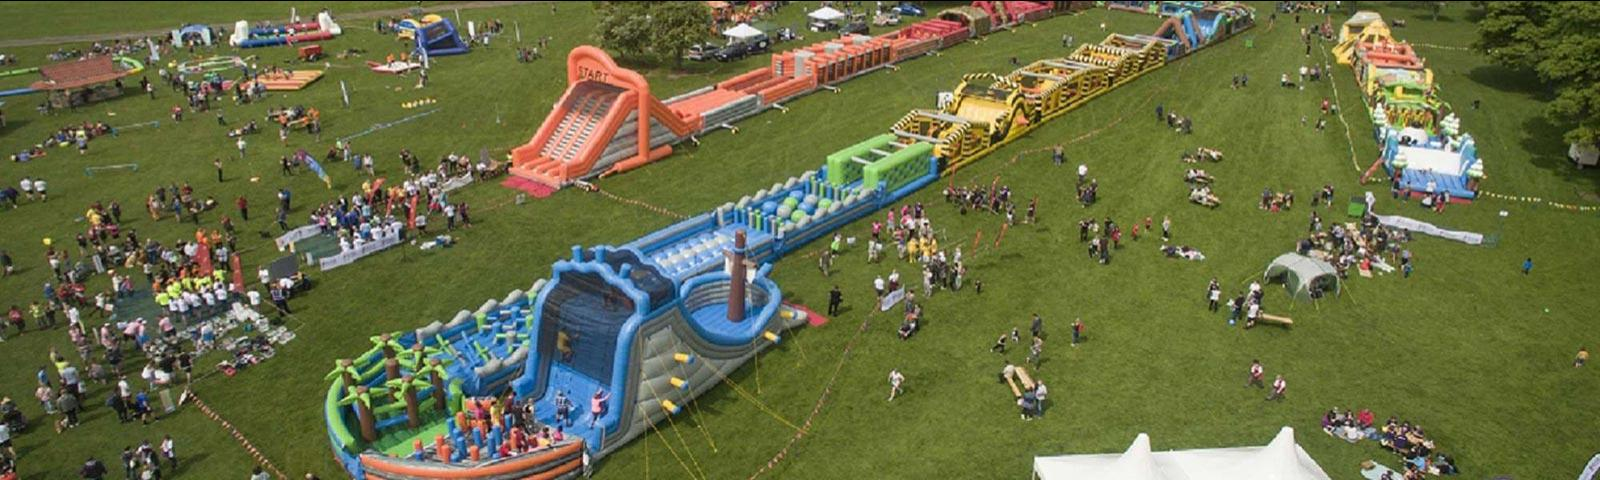 Obstacle course built out of inflatables at Brighton Racecourse.